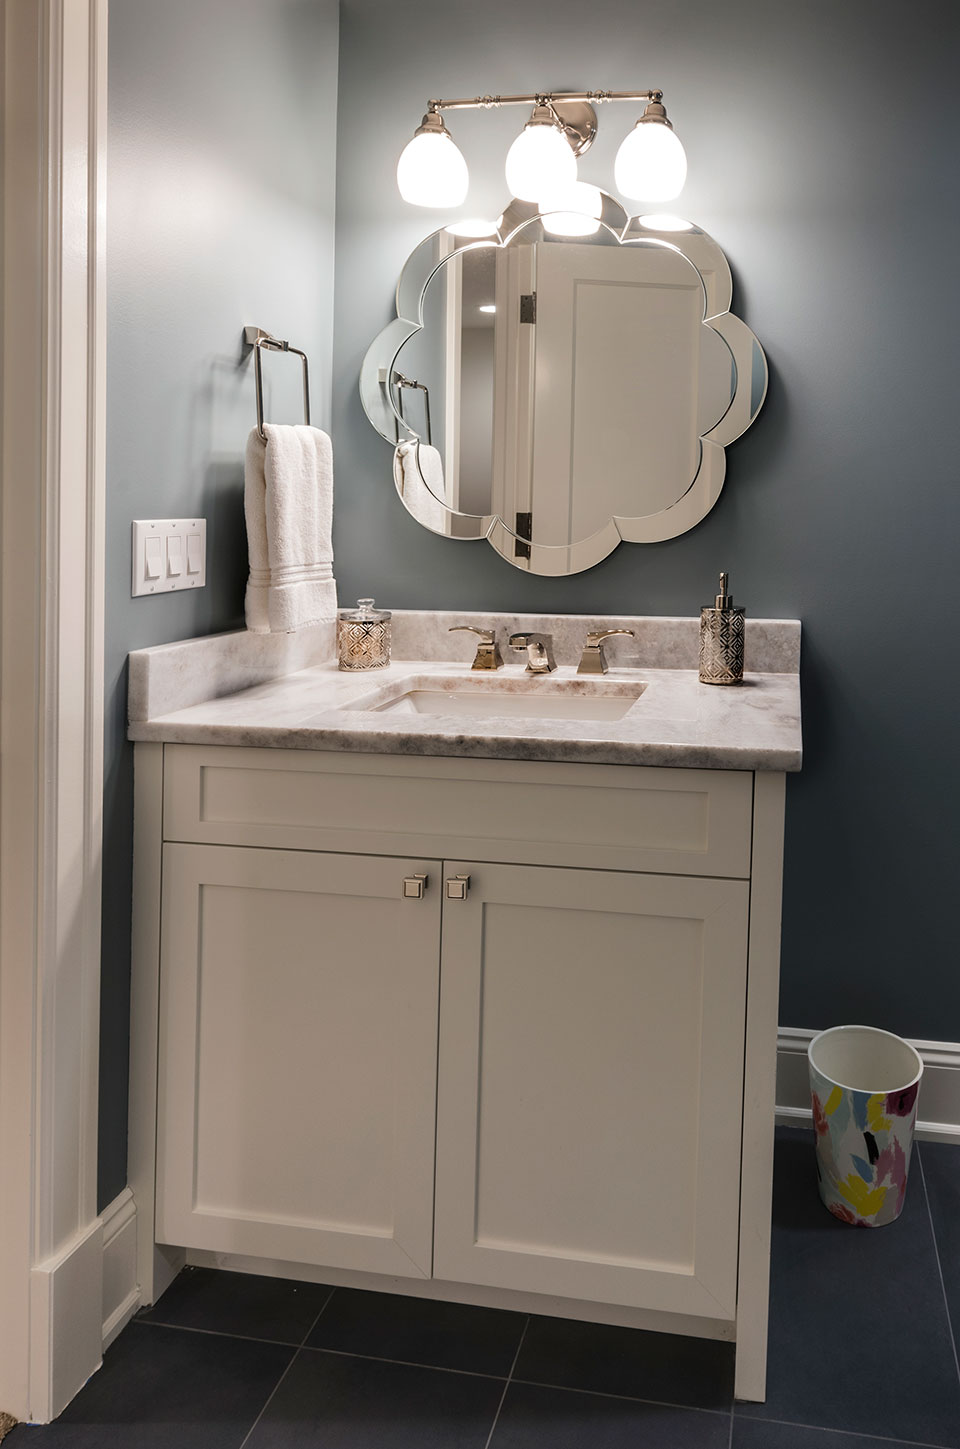 1943-Glen-Oak-Glenview - Basement-Bathroom-Vanity - Globex Developments Custom Homes